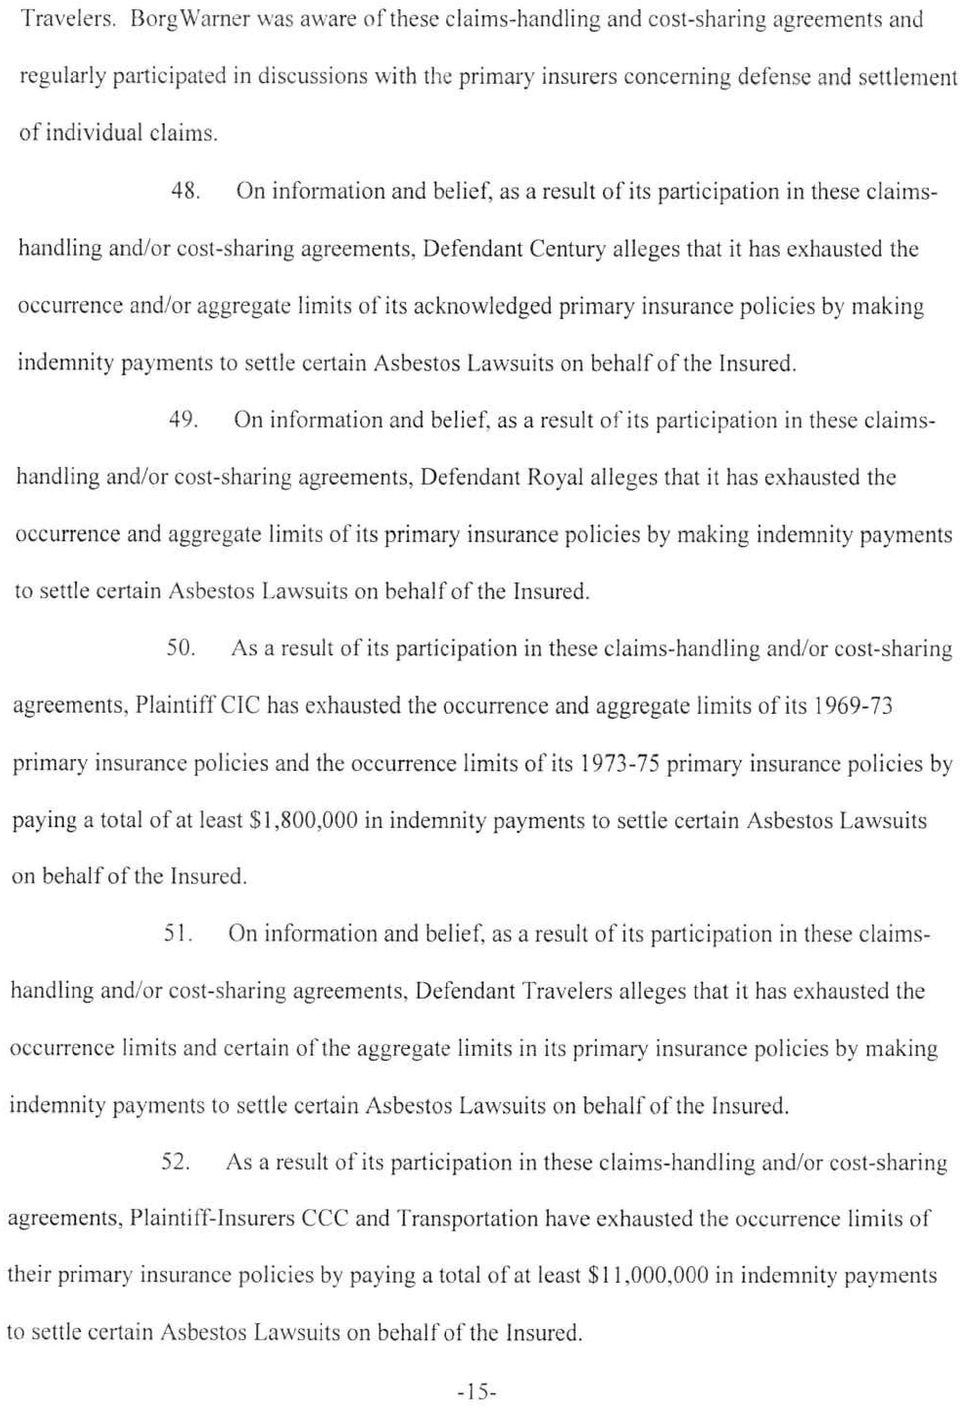 48. On information and belief, as a result of its participation in these claimshandling and/or cost-sharing agreements, Defendant Century alleges that it has exhausted the occurrence and/or